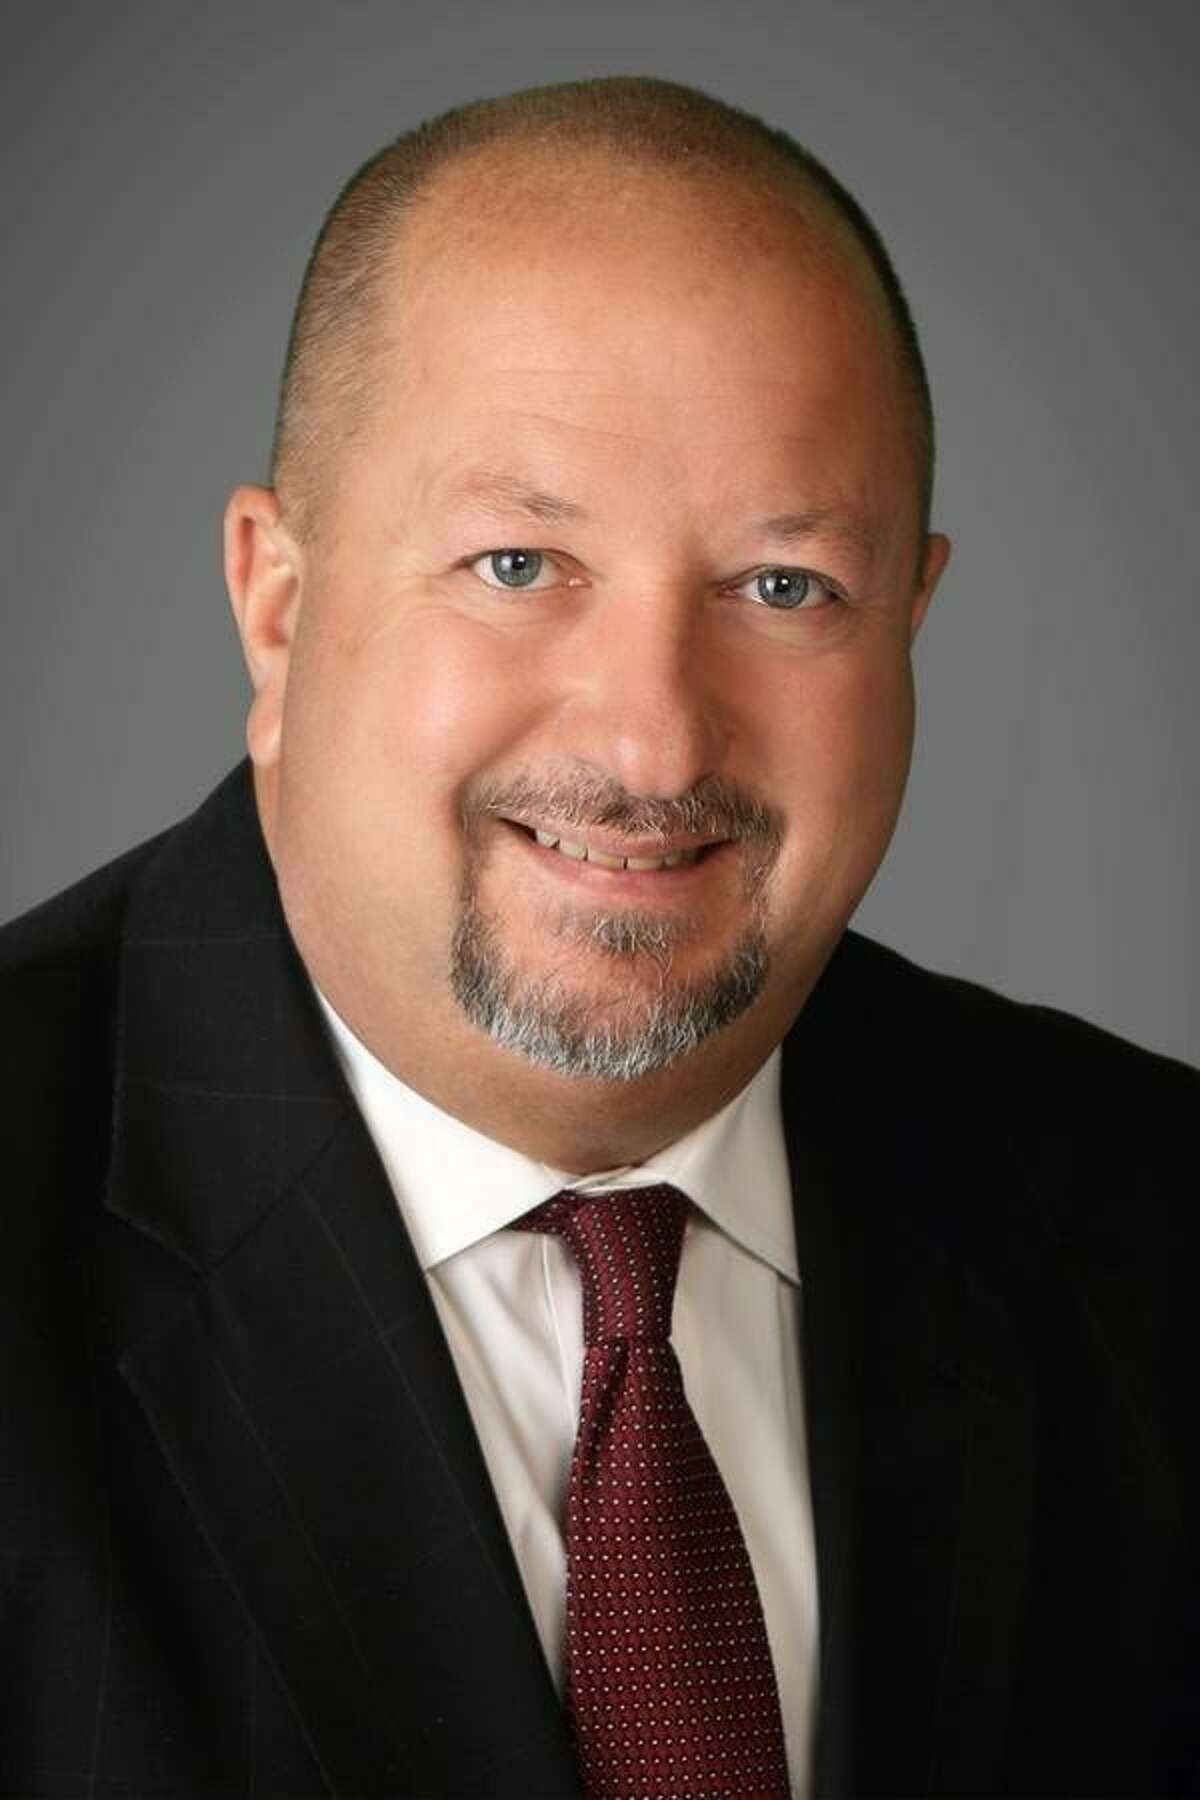 Robert Sitton is running for re-election to Position 1 on the Humble ISD school board of trustees in the May 1 election.